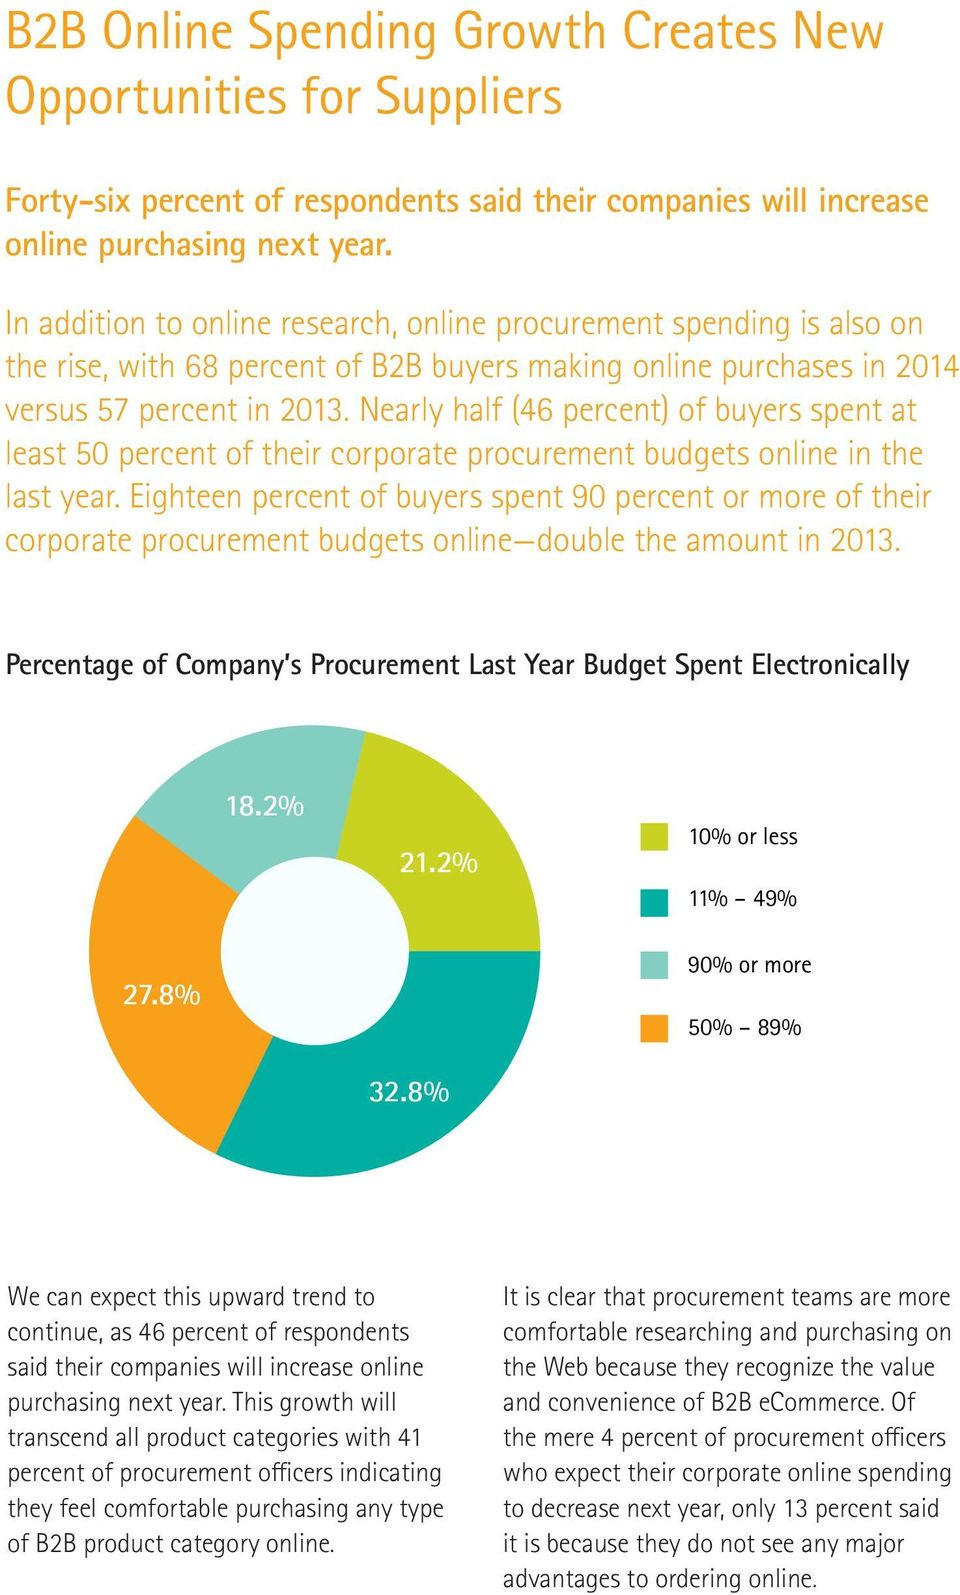 the rise, with 68 percent of B2B buyers making online purchases in 2014 versus 57 Speak percent to someone in 2013.